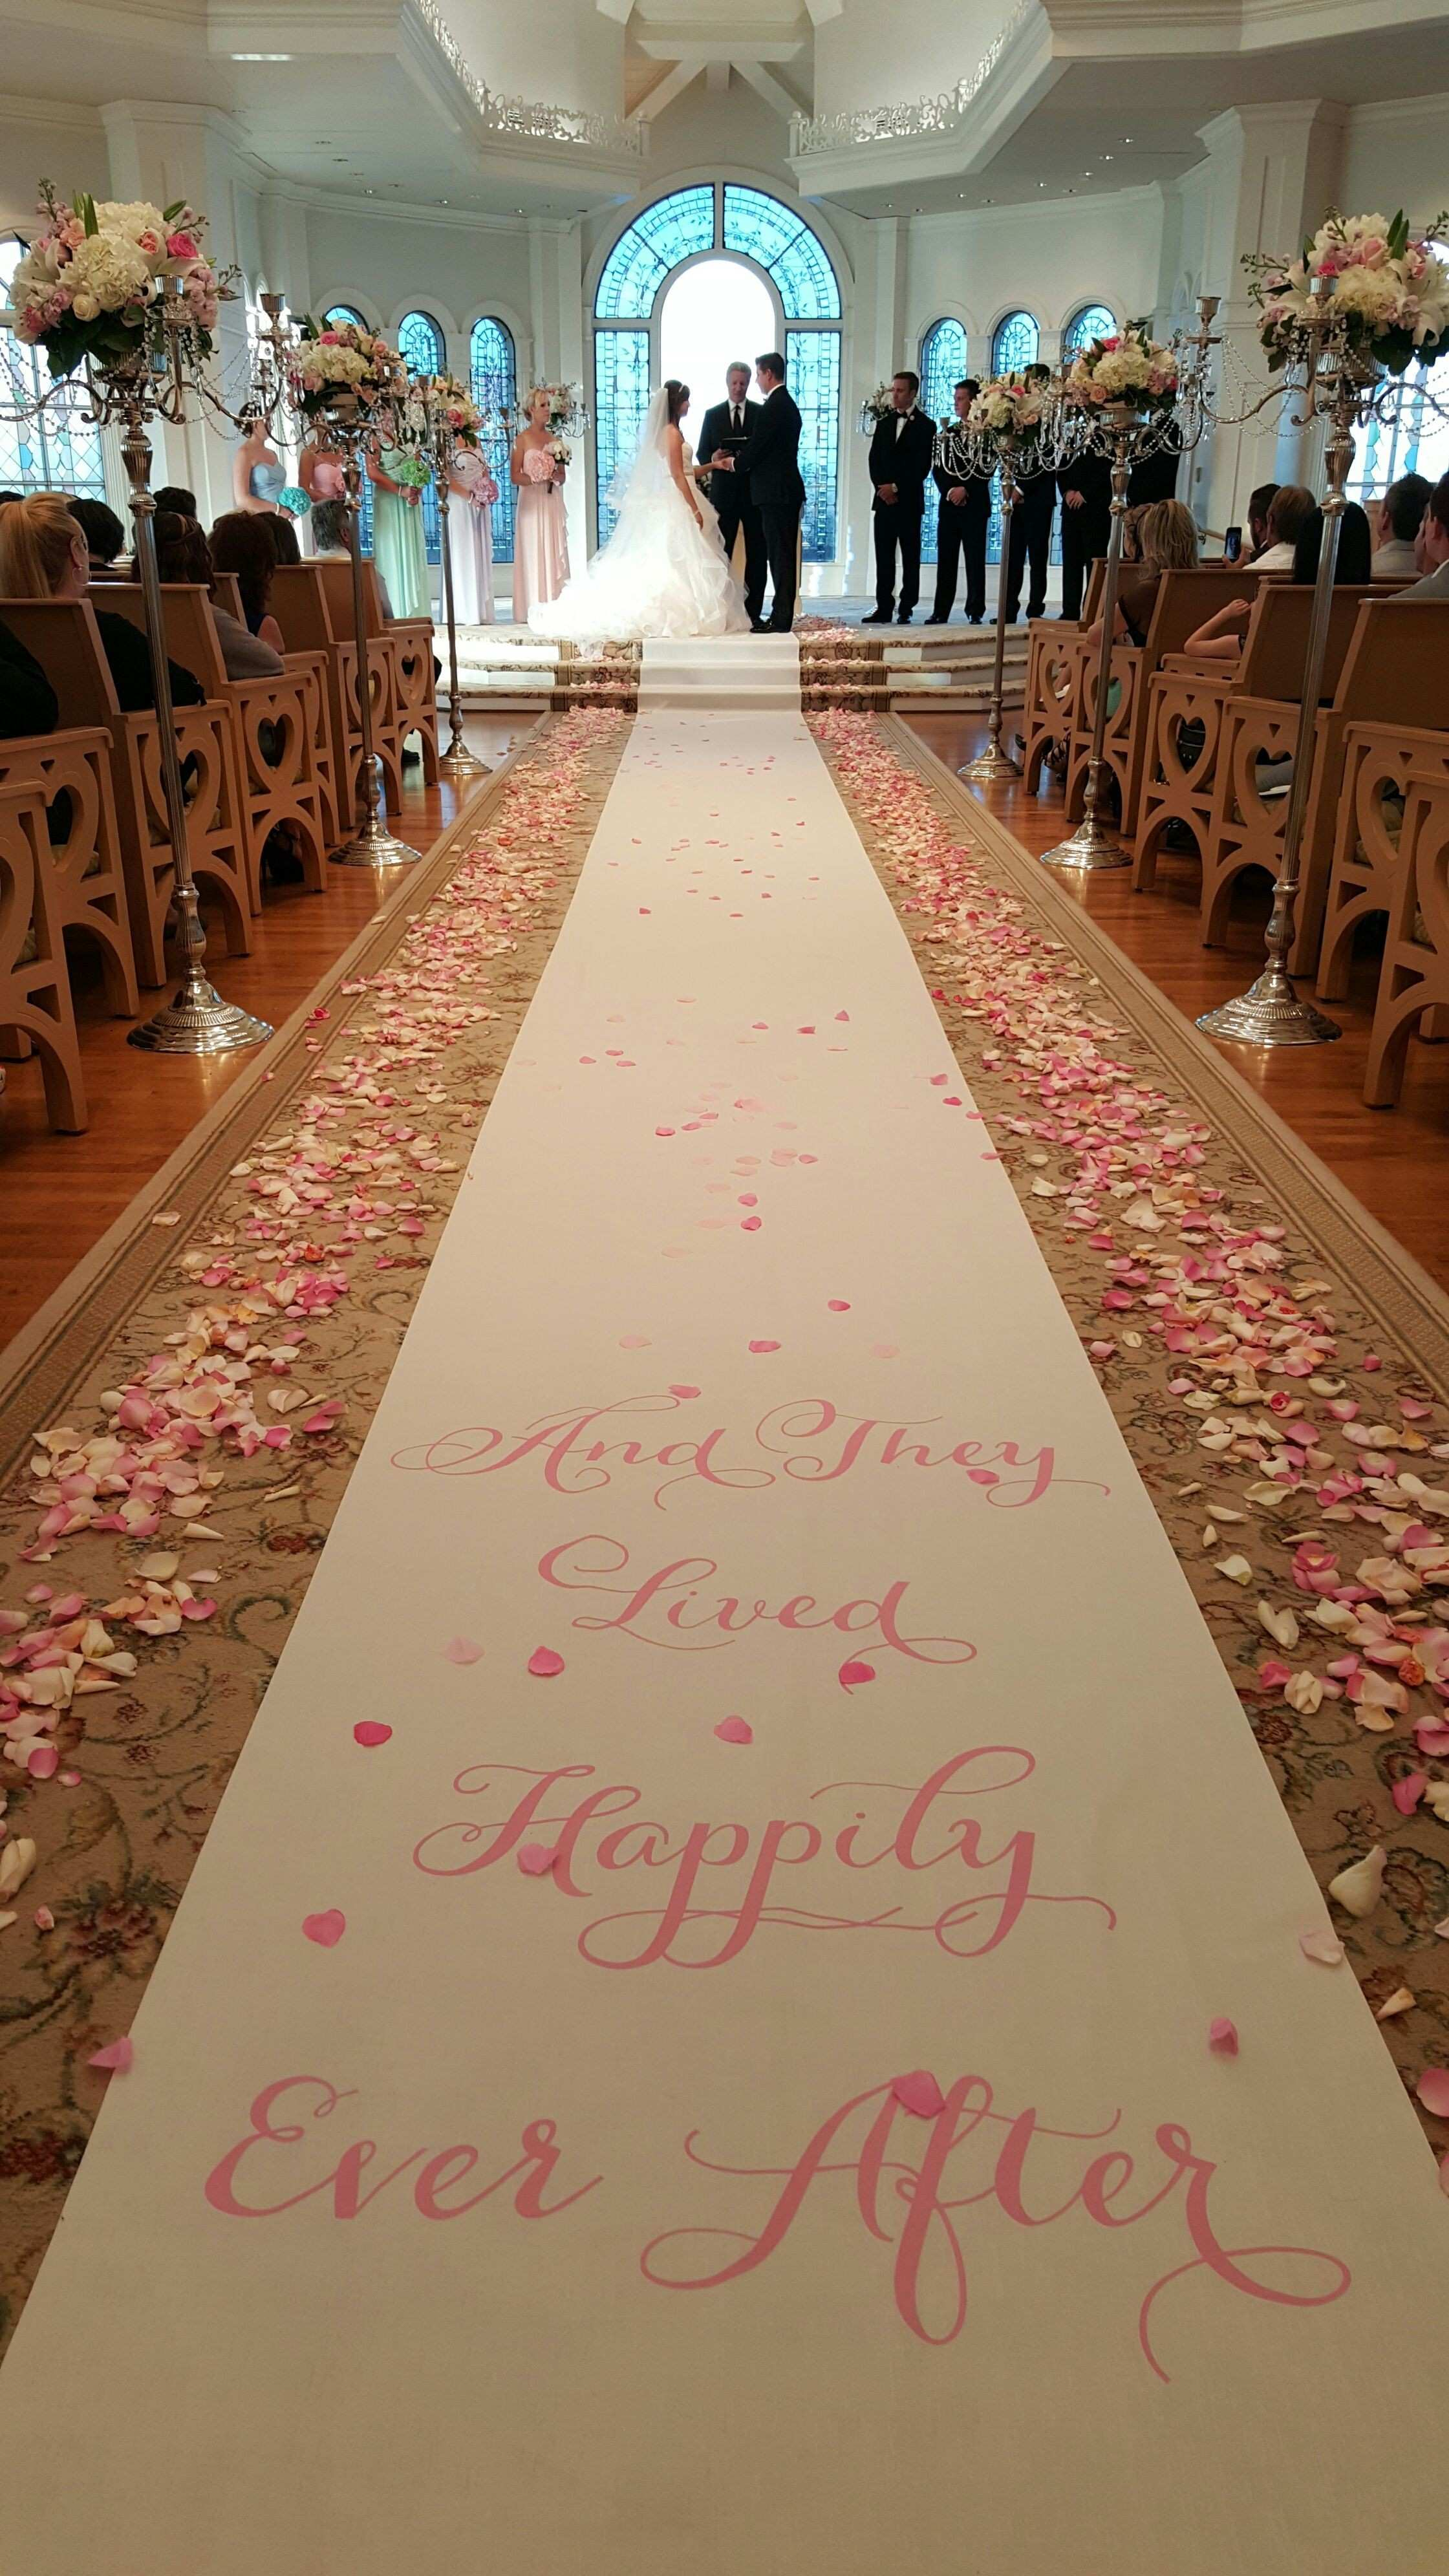 A real life fairy tale story at Disney s Wedding Pavilion